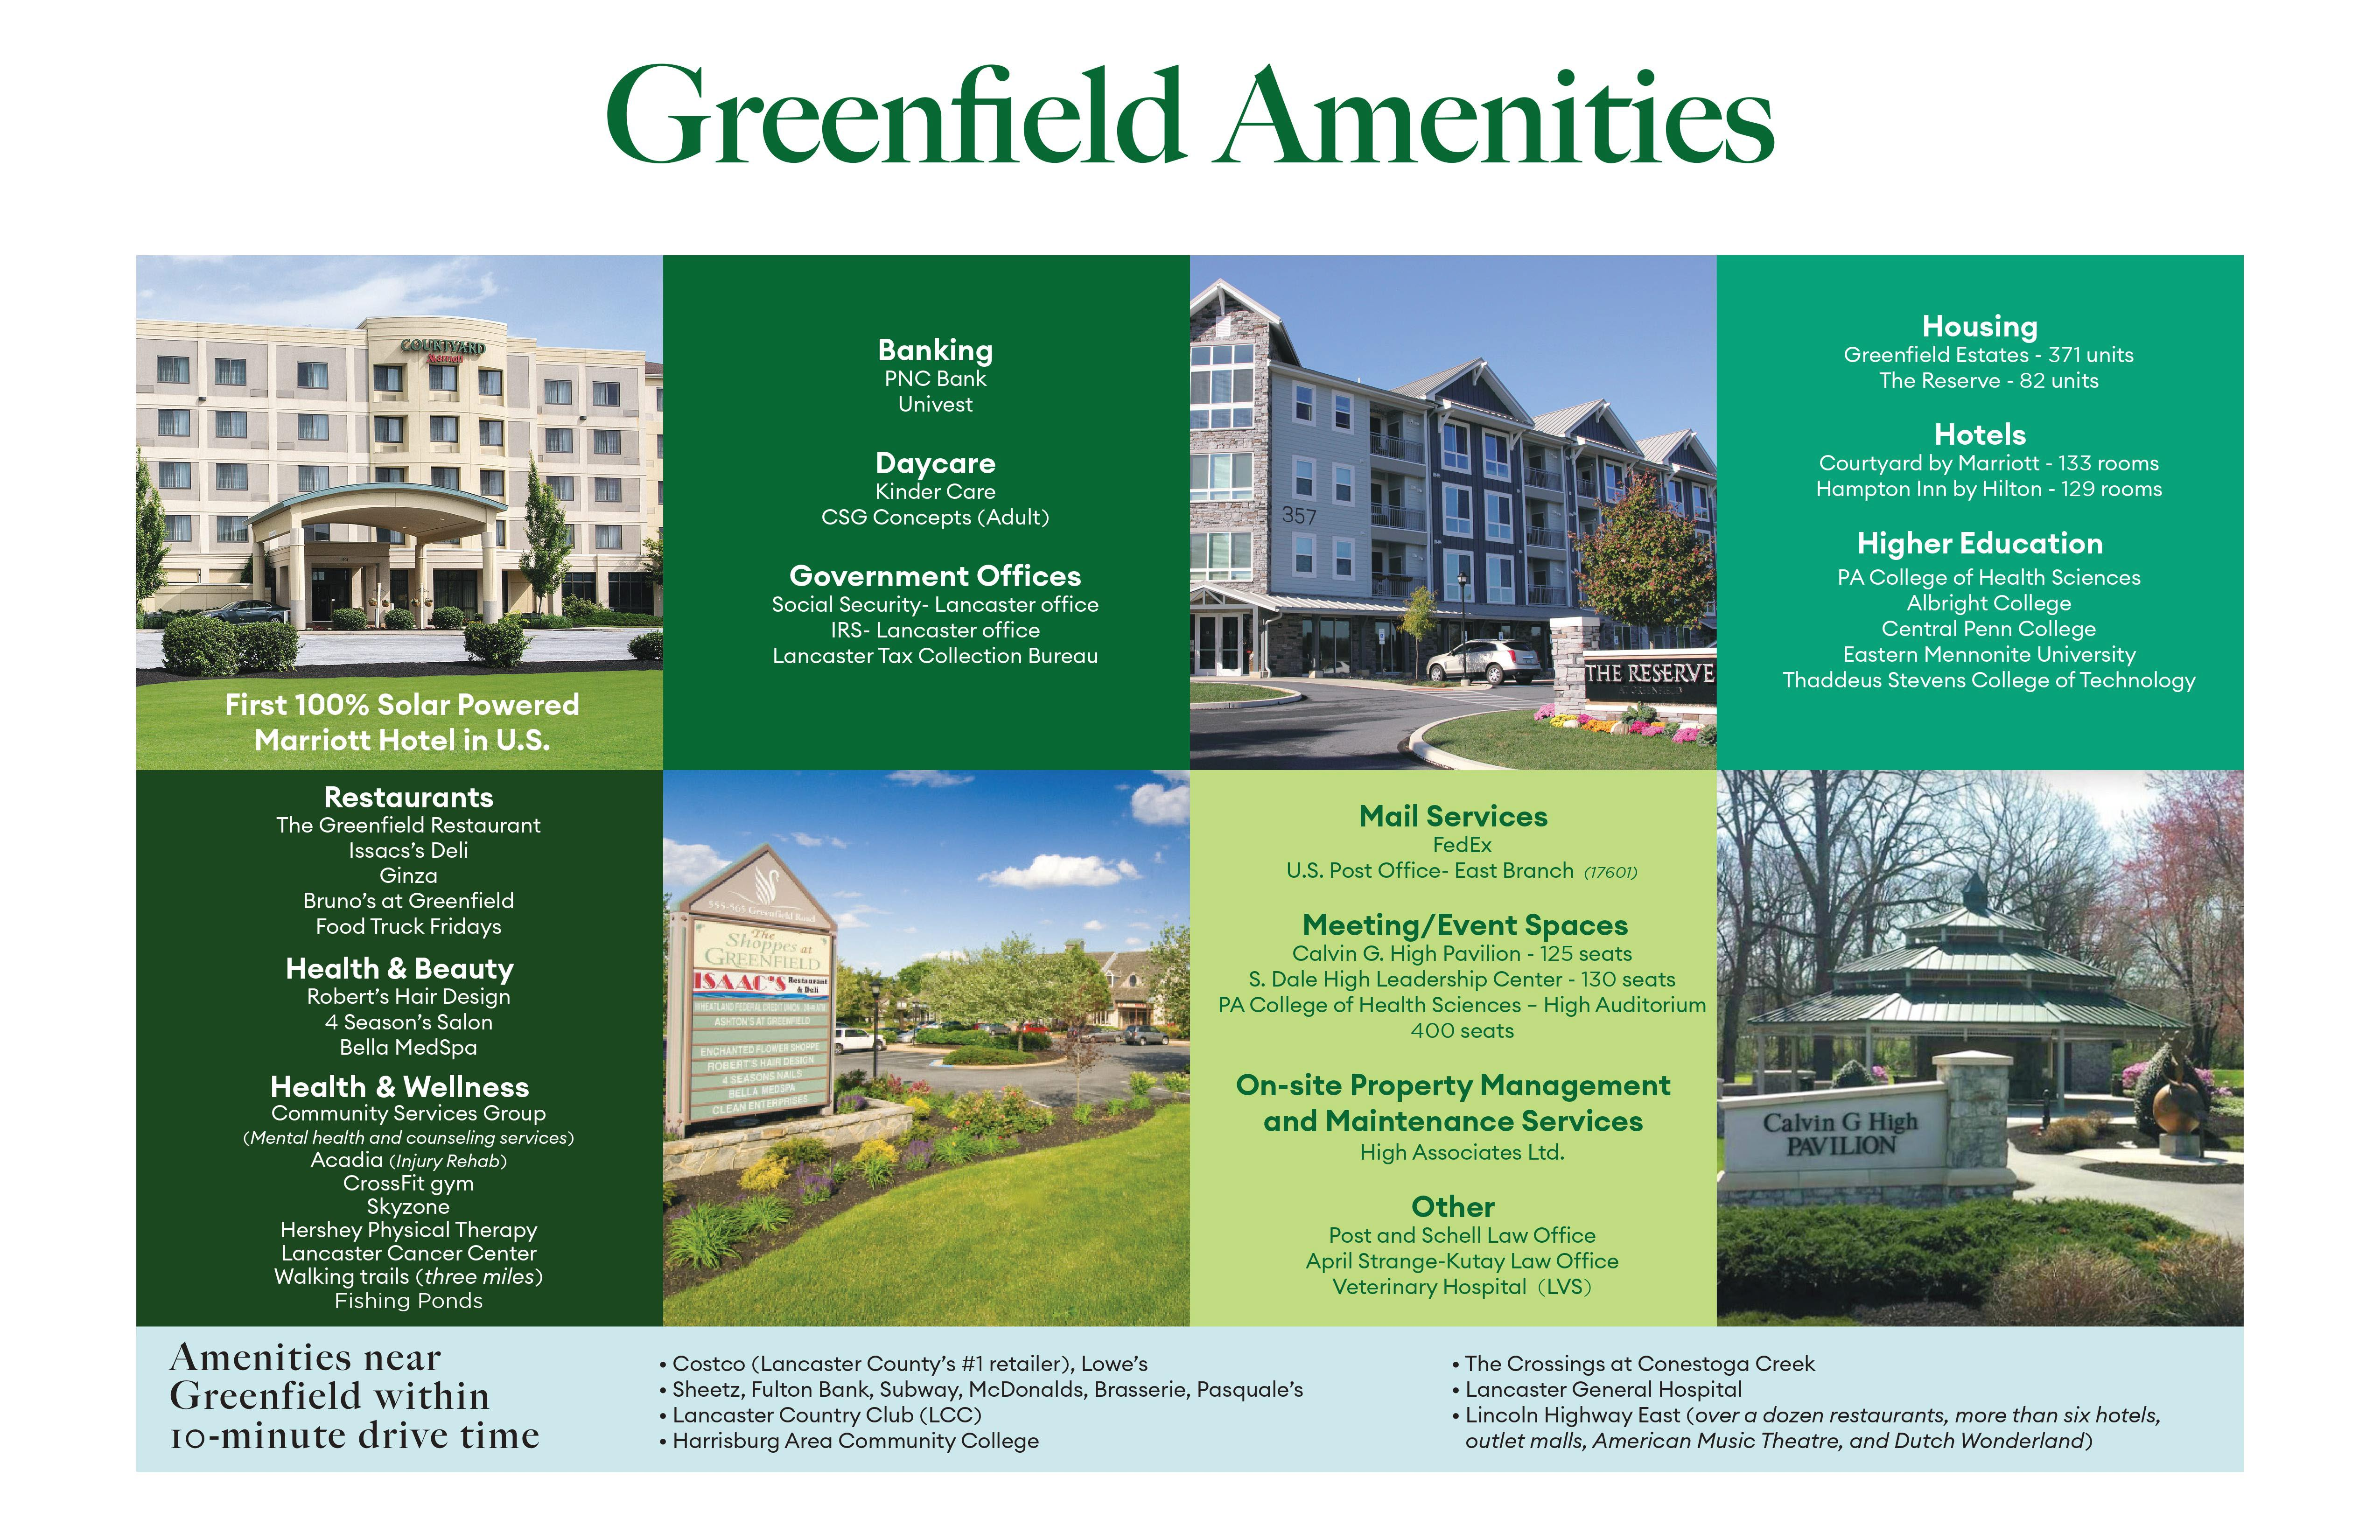 Images and text describing Greenfield amenities.